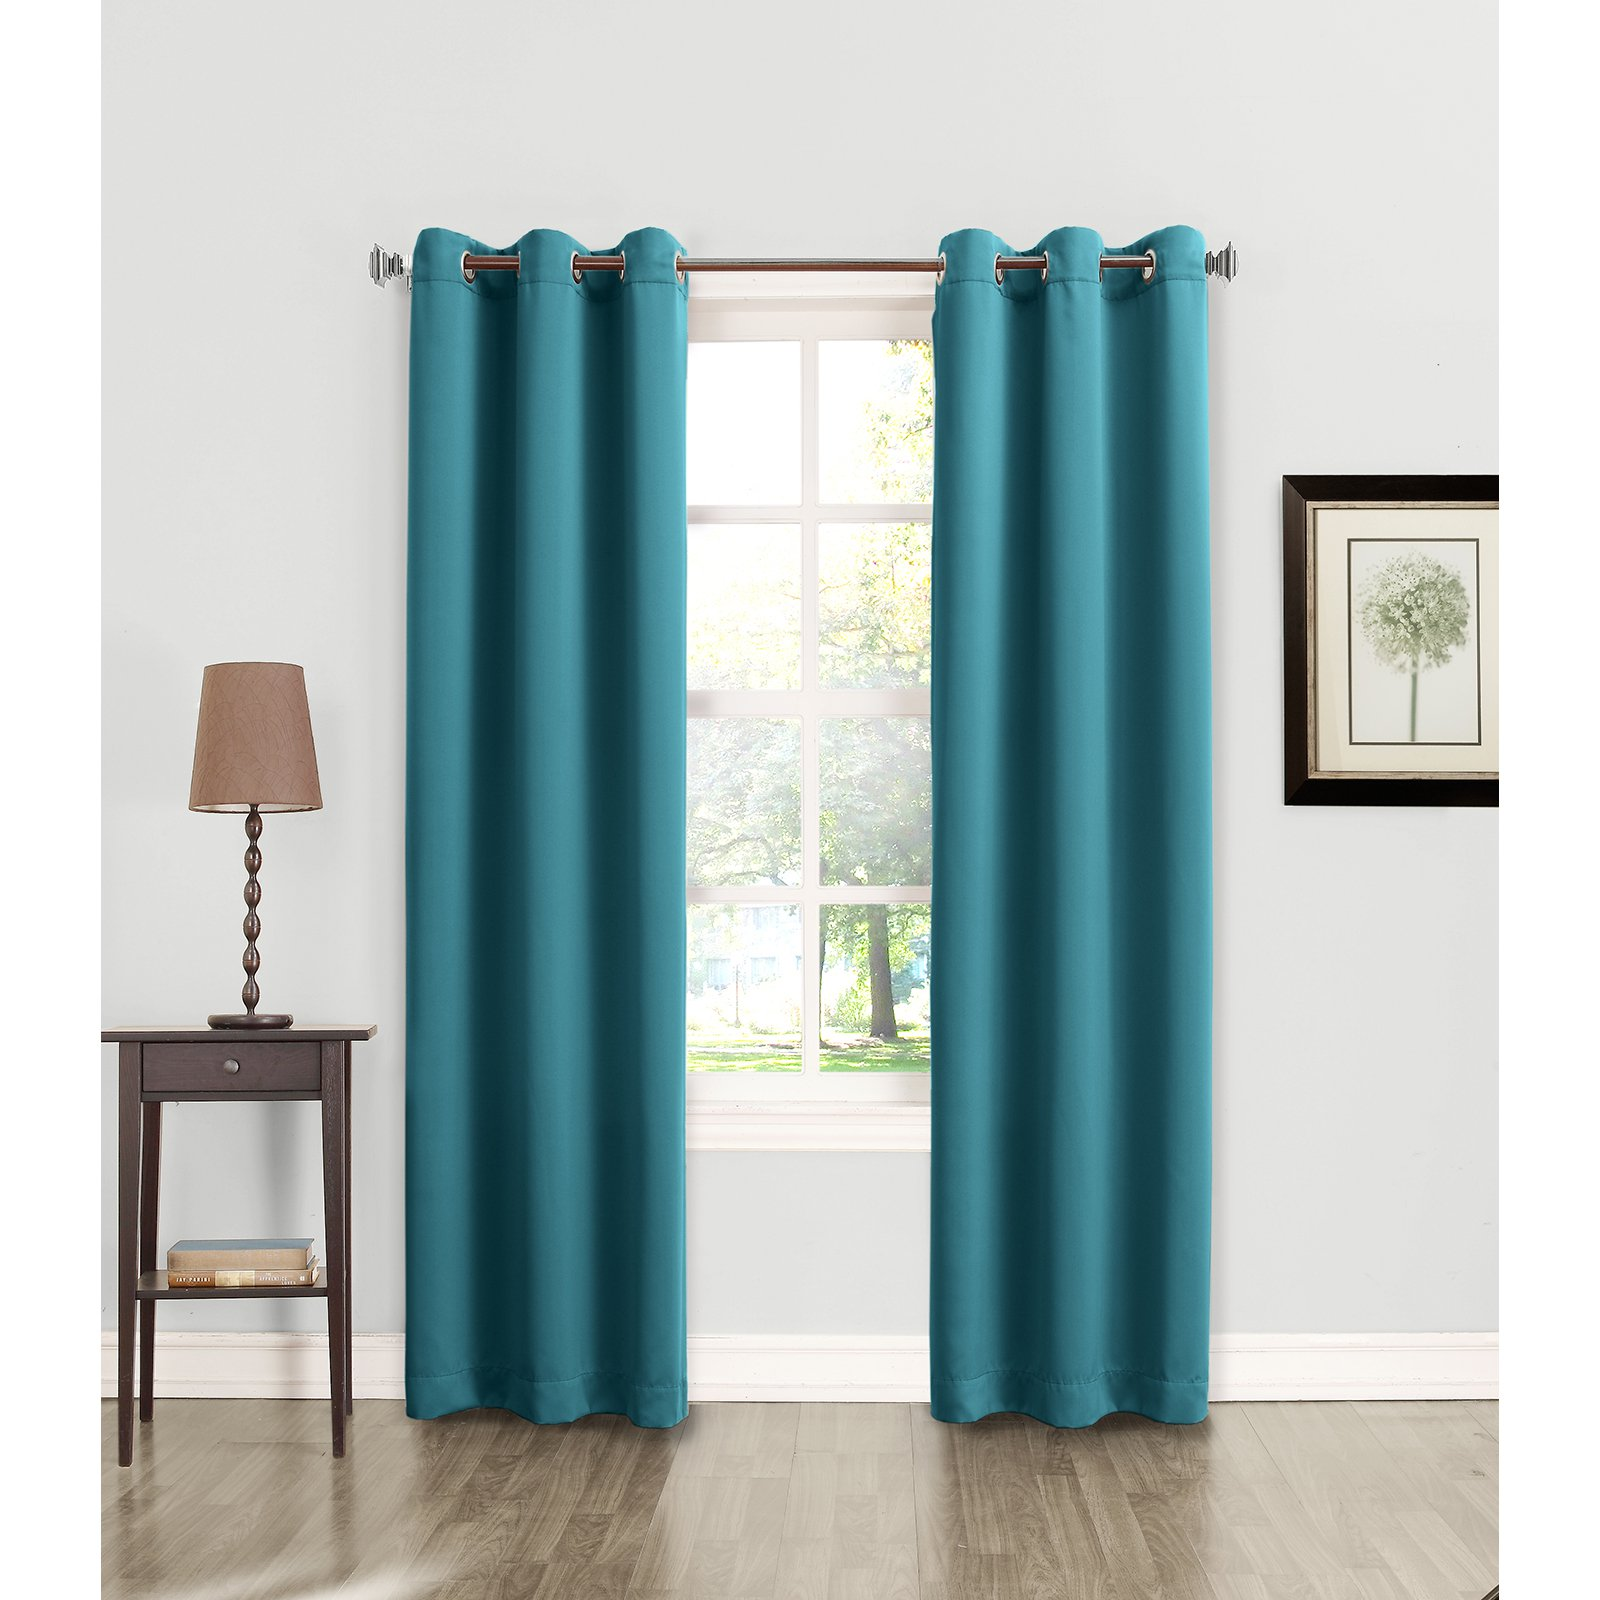 Sun Zero Millennial Arya Room Darkening Grommet Curtain Panel